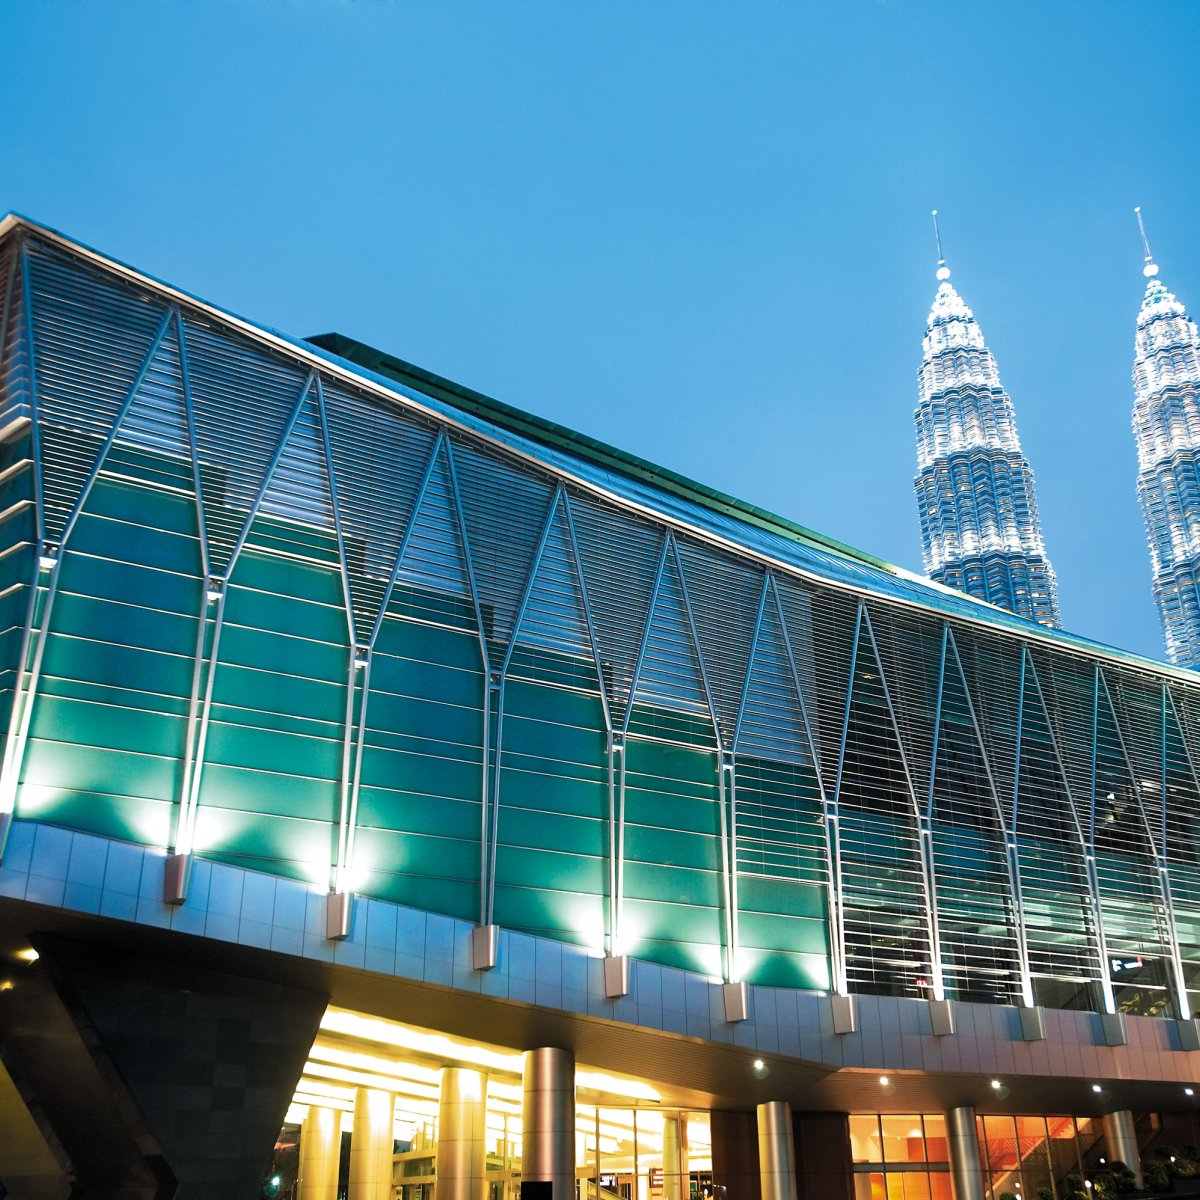 Exterior Image of Kuala Lumpur Convention Center at night